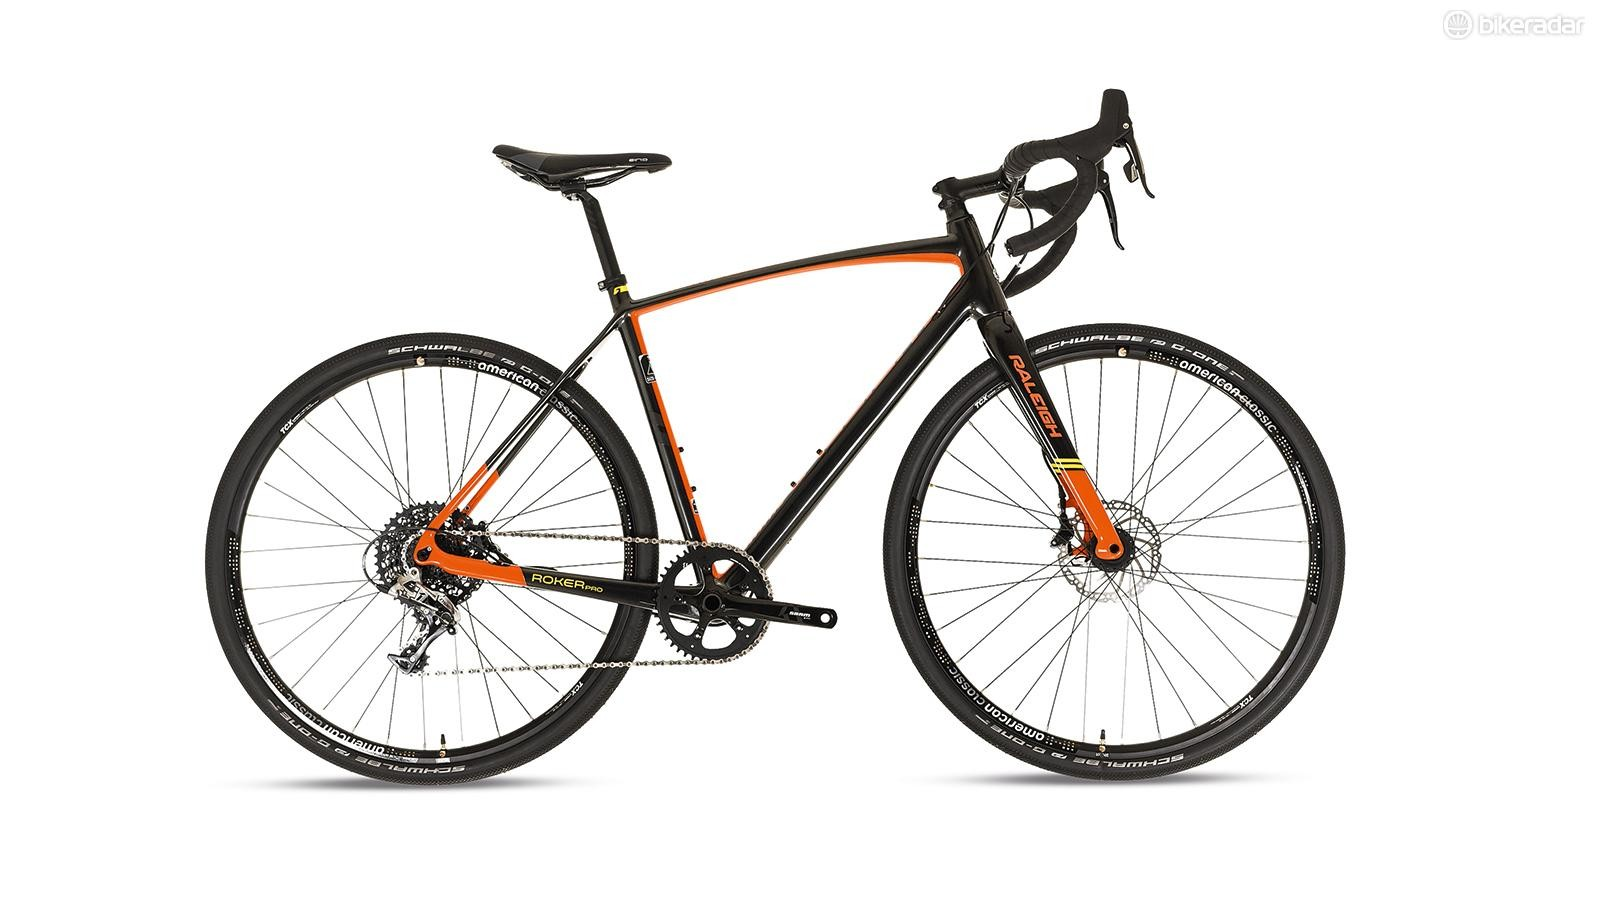 Raleigh's Roker Pro sits second from top of the brand's gravel range